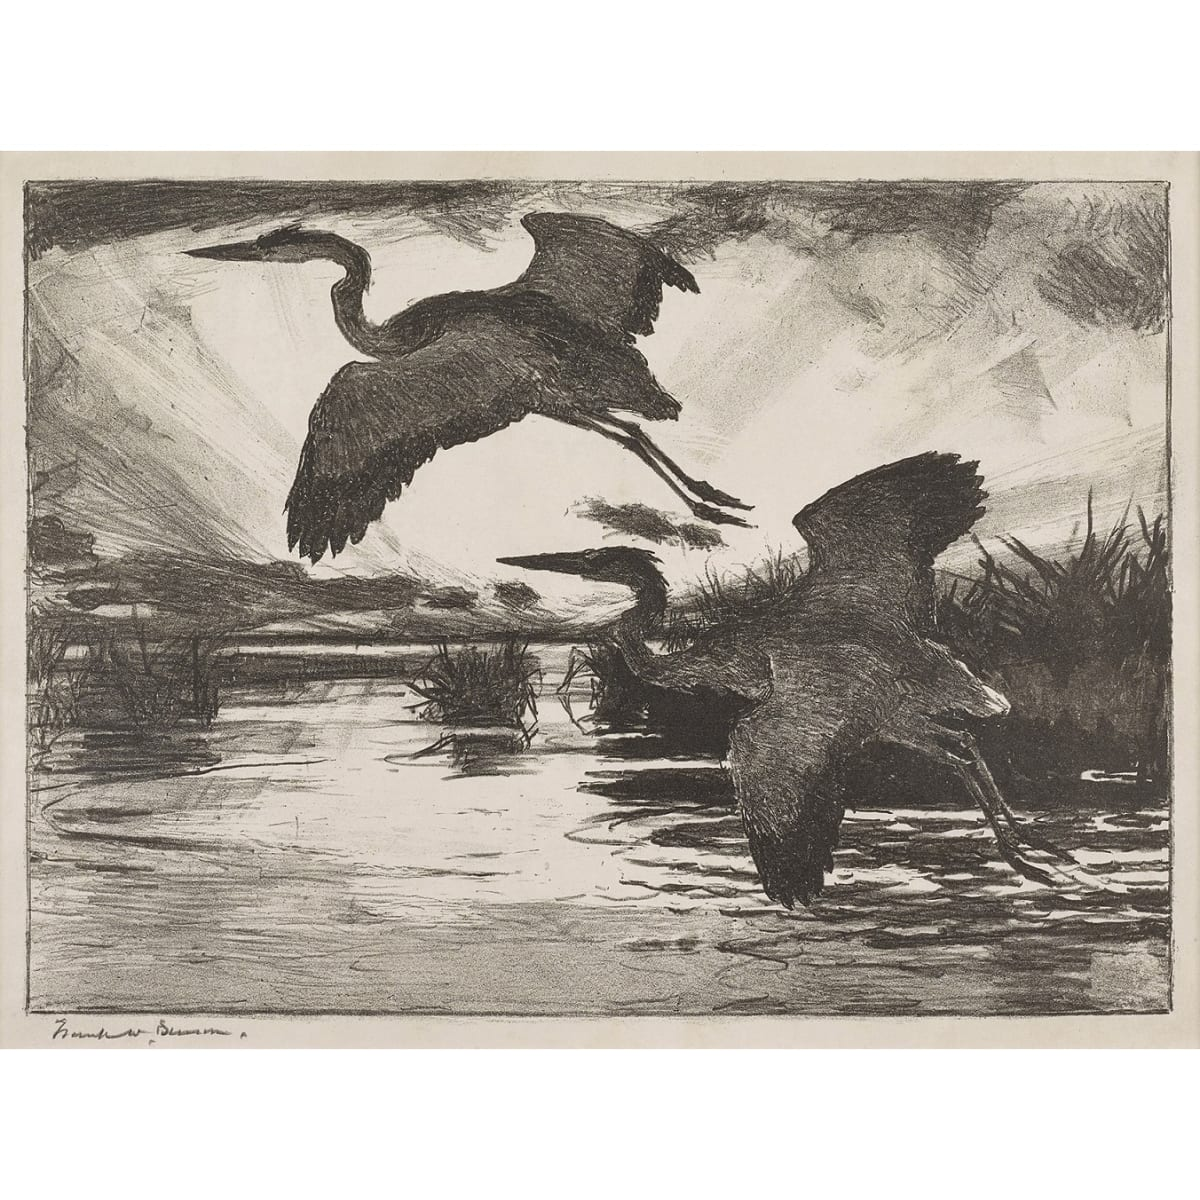 Frank Weston Benson Blue Herons, 1928 initialled FWB and dated 1928 in plate; signed in pencil to margin and titled in pencil to sheet etching 9 1/2 x 13 inches